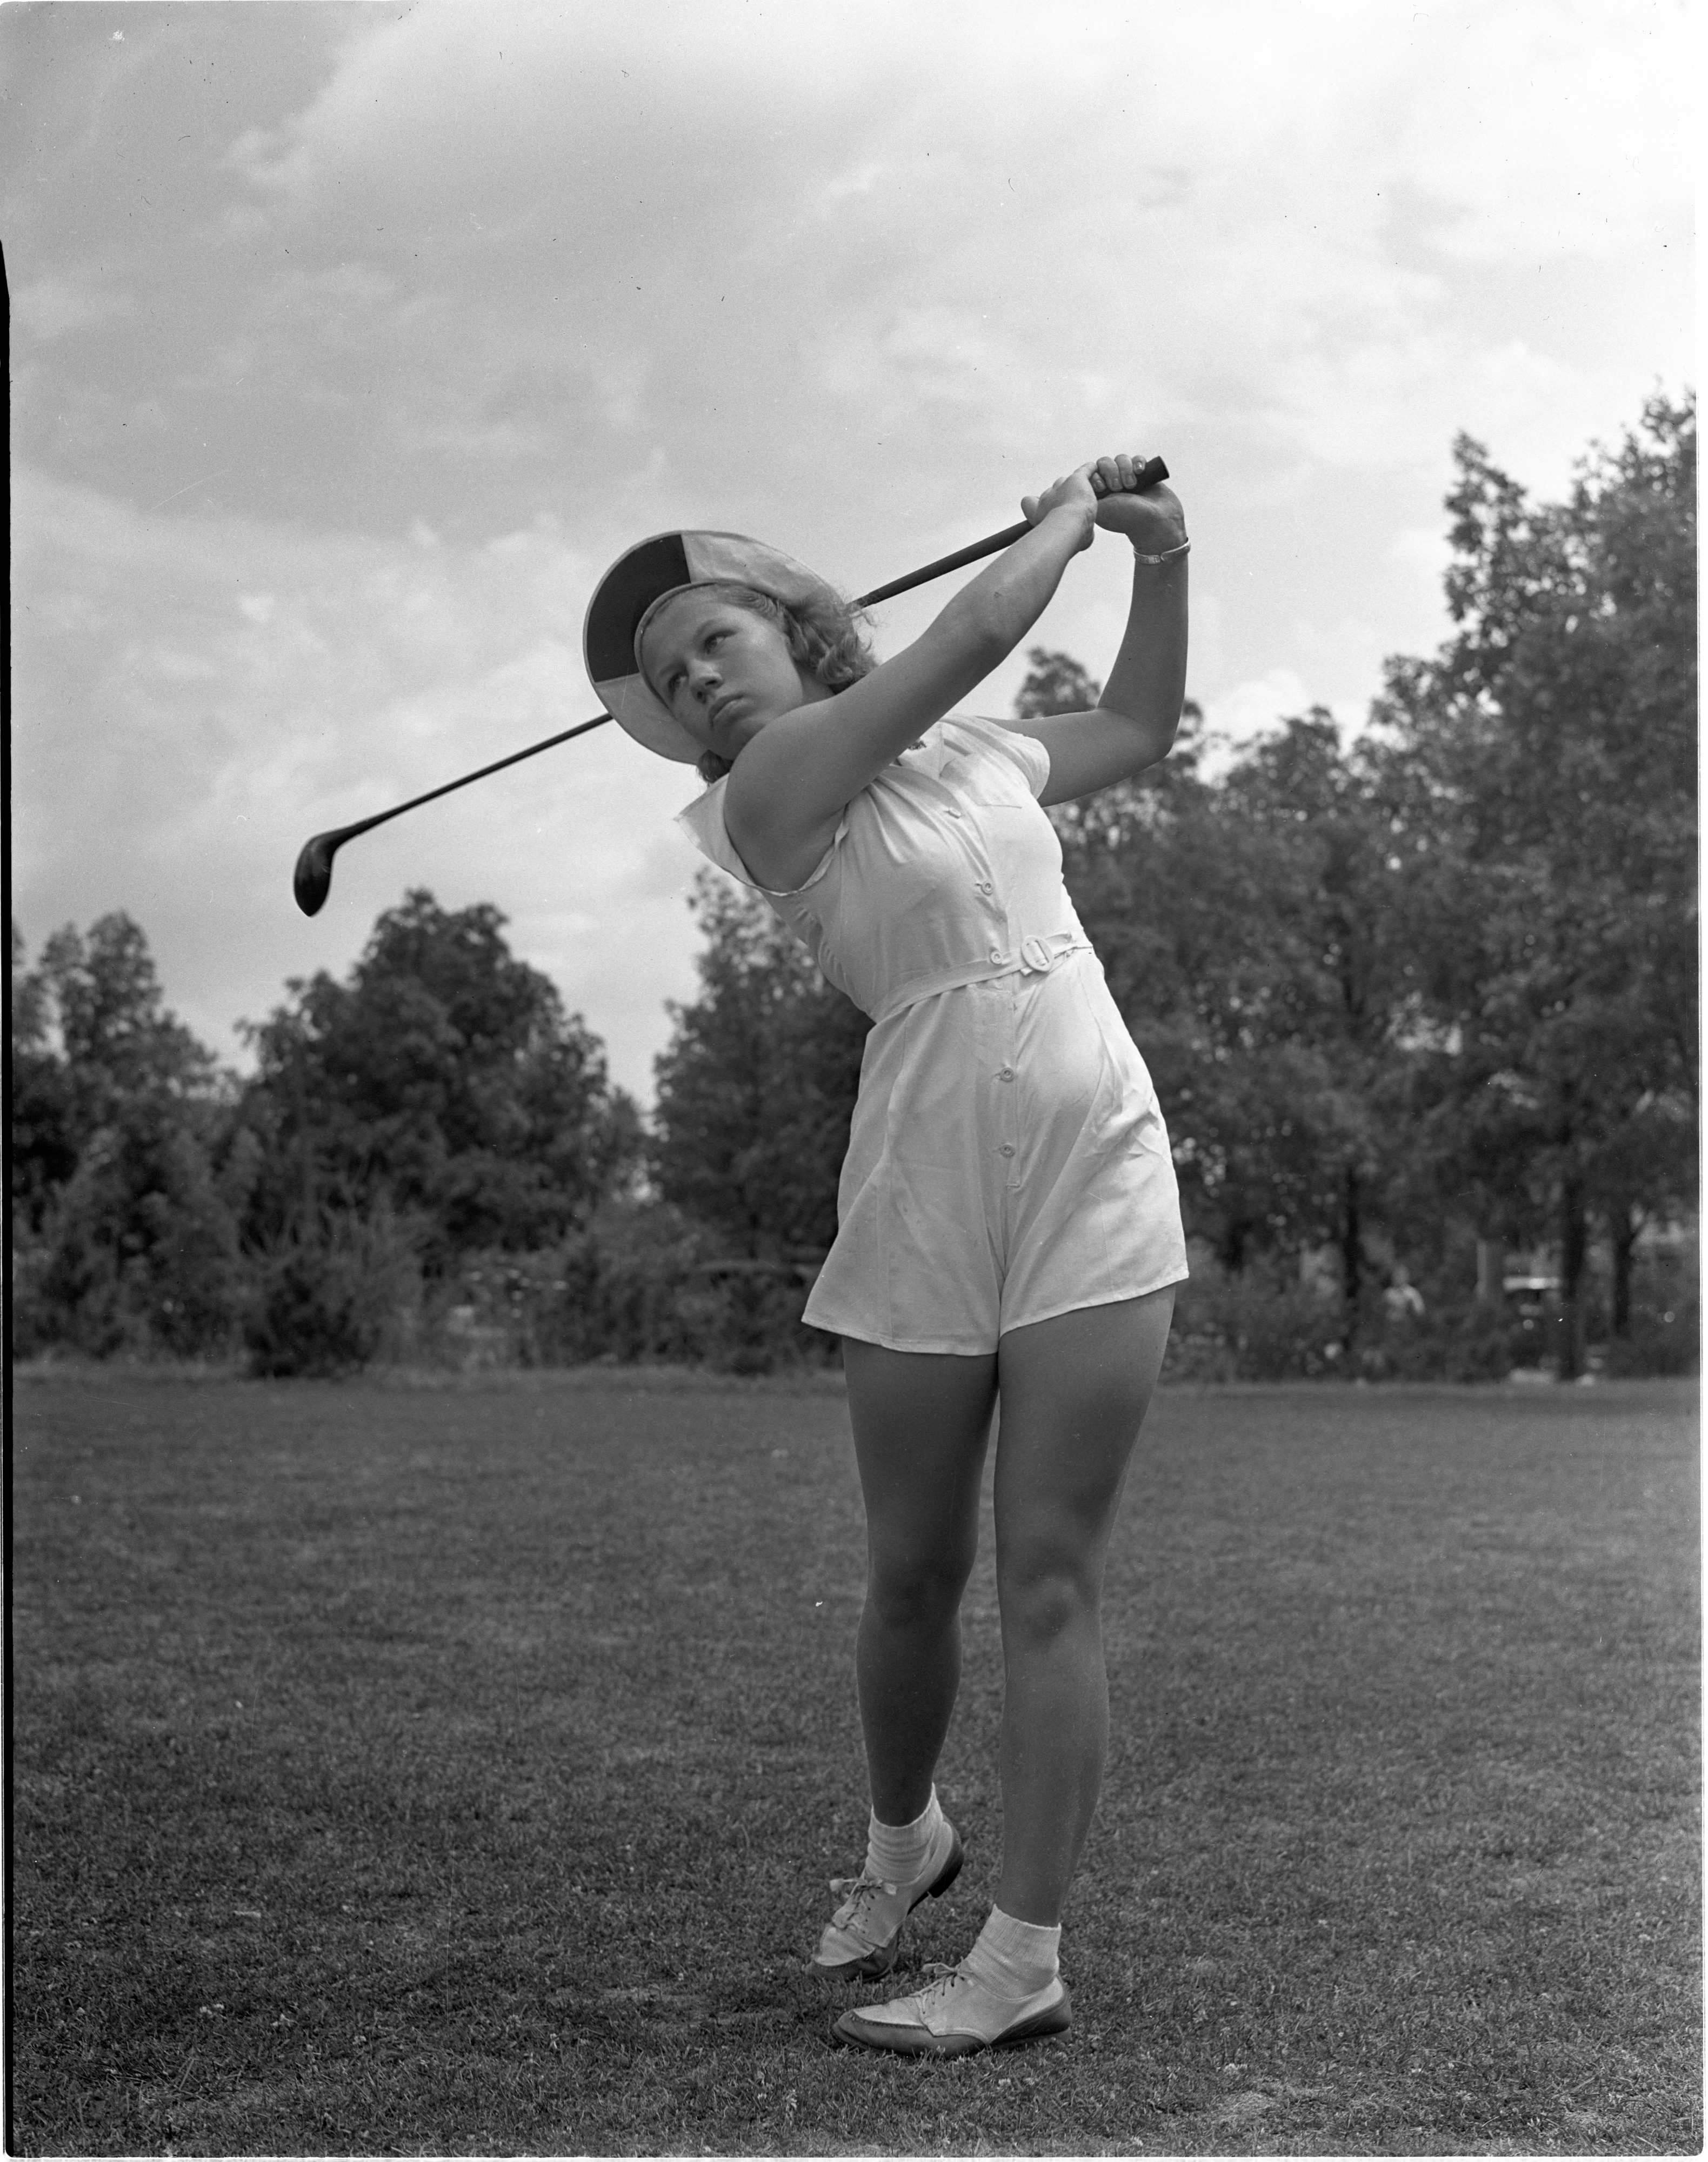 Betty Jane Courtright - Ann Arbor Golfer, July 1939 image